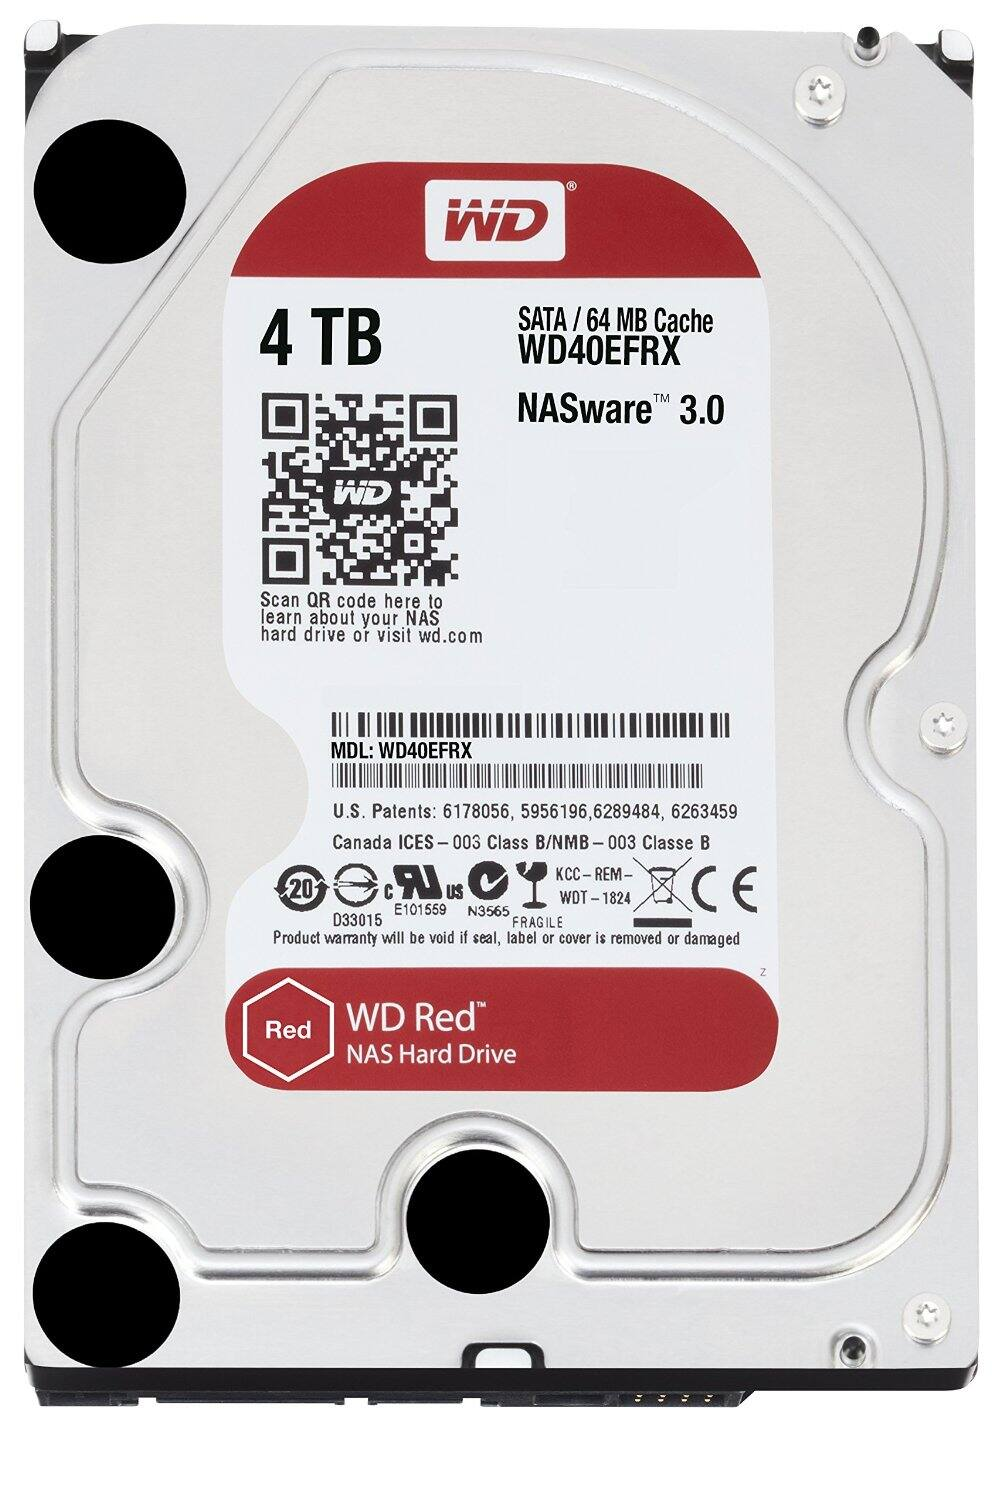 2x of WD Red 4TB NAS Hard Drive 3.5 Inch - WD40EFRX $254.98 AC @ newegg.com with PayPal Checkout